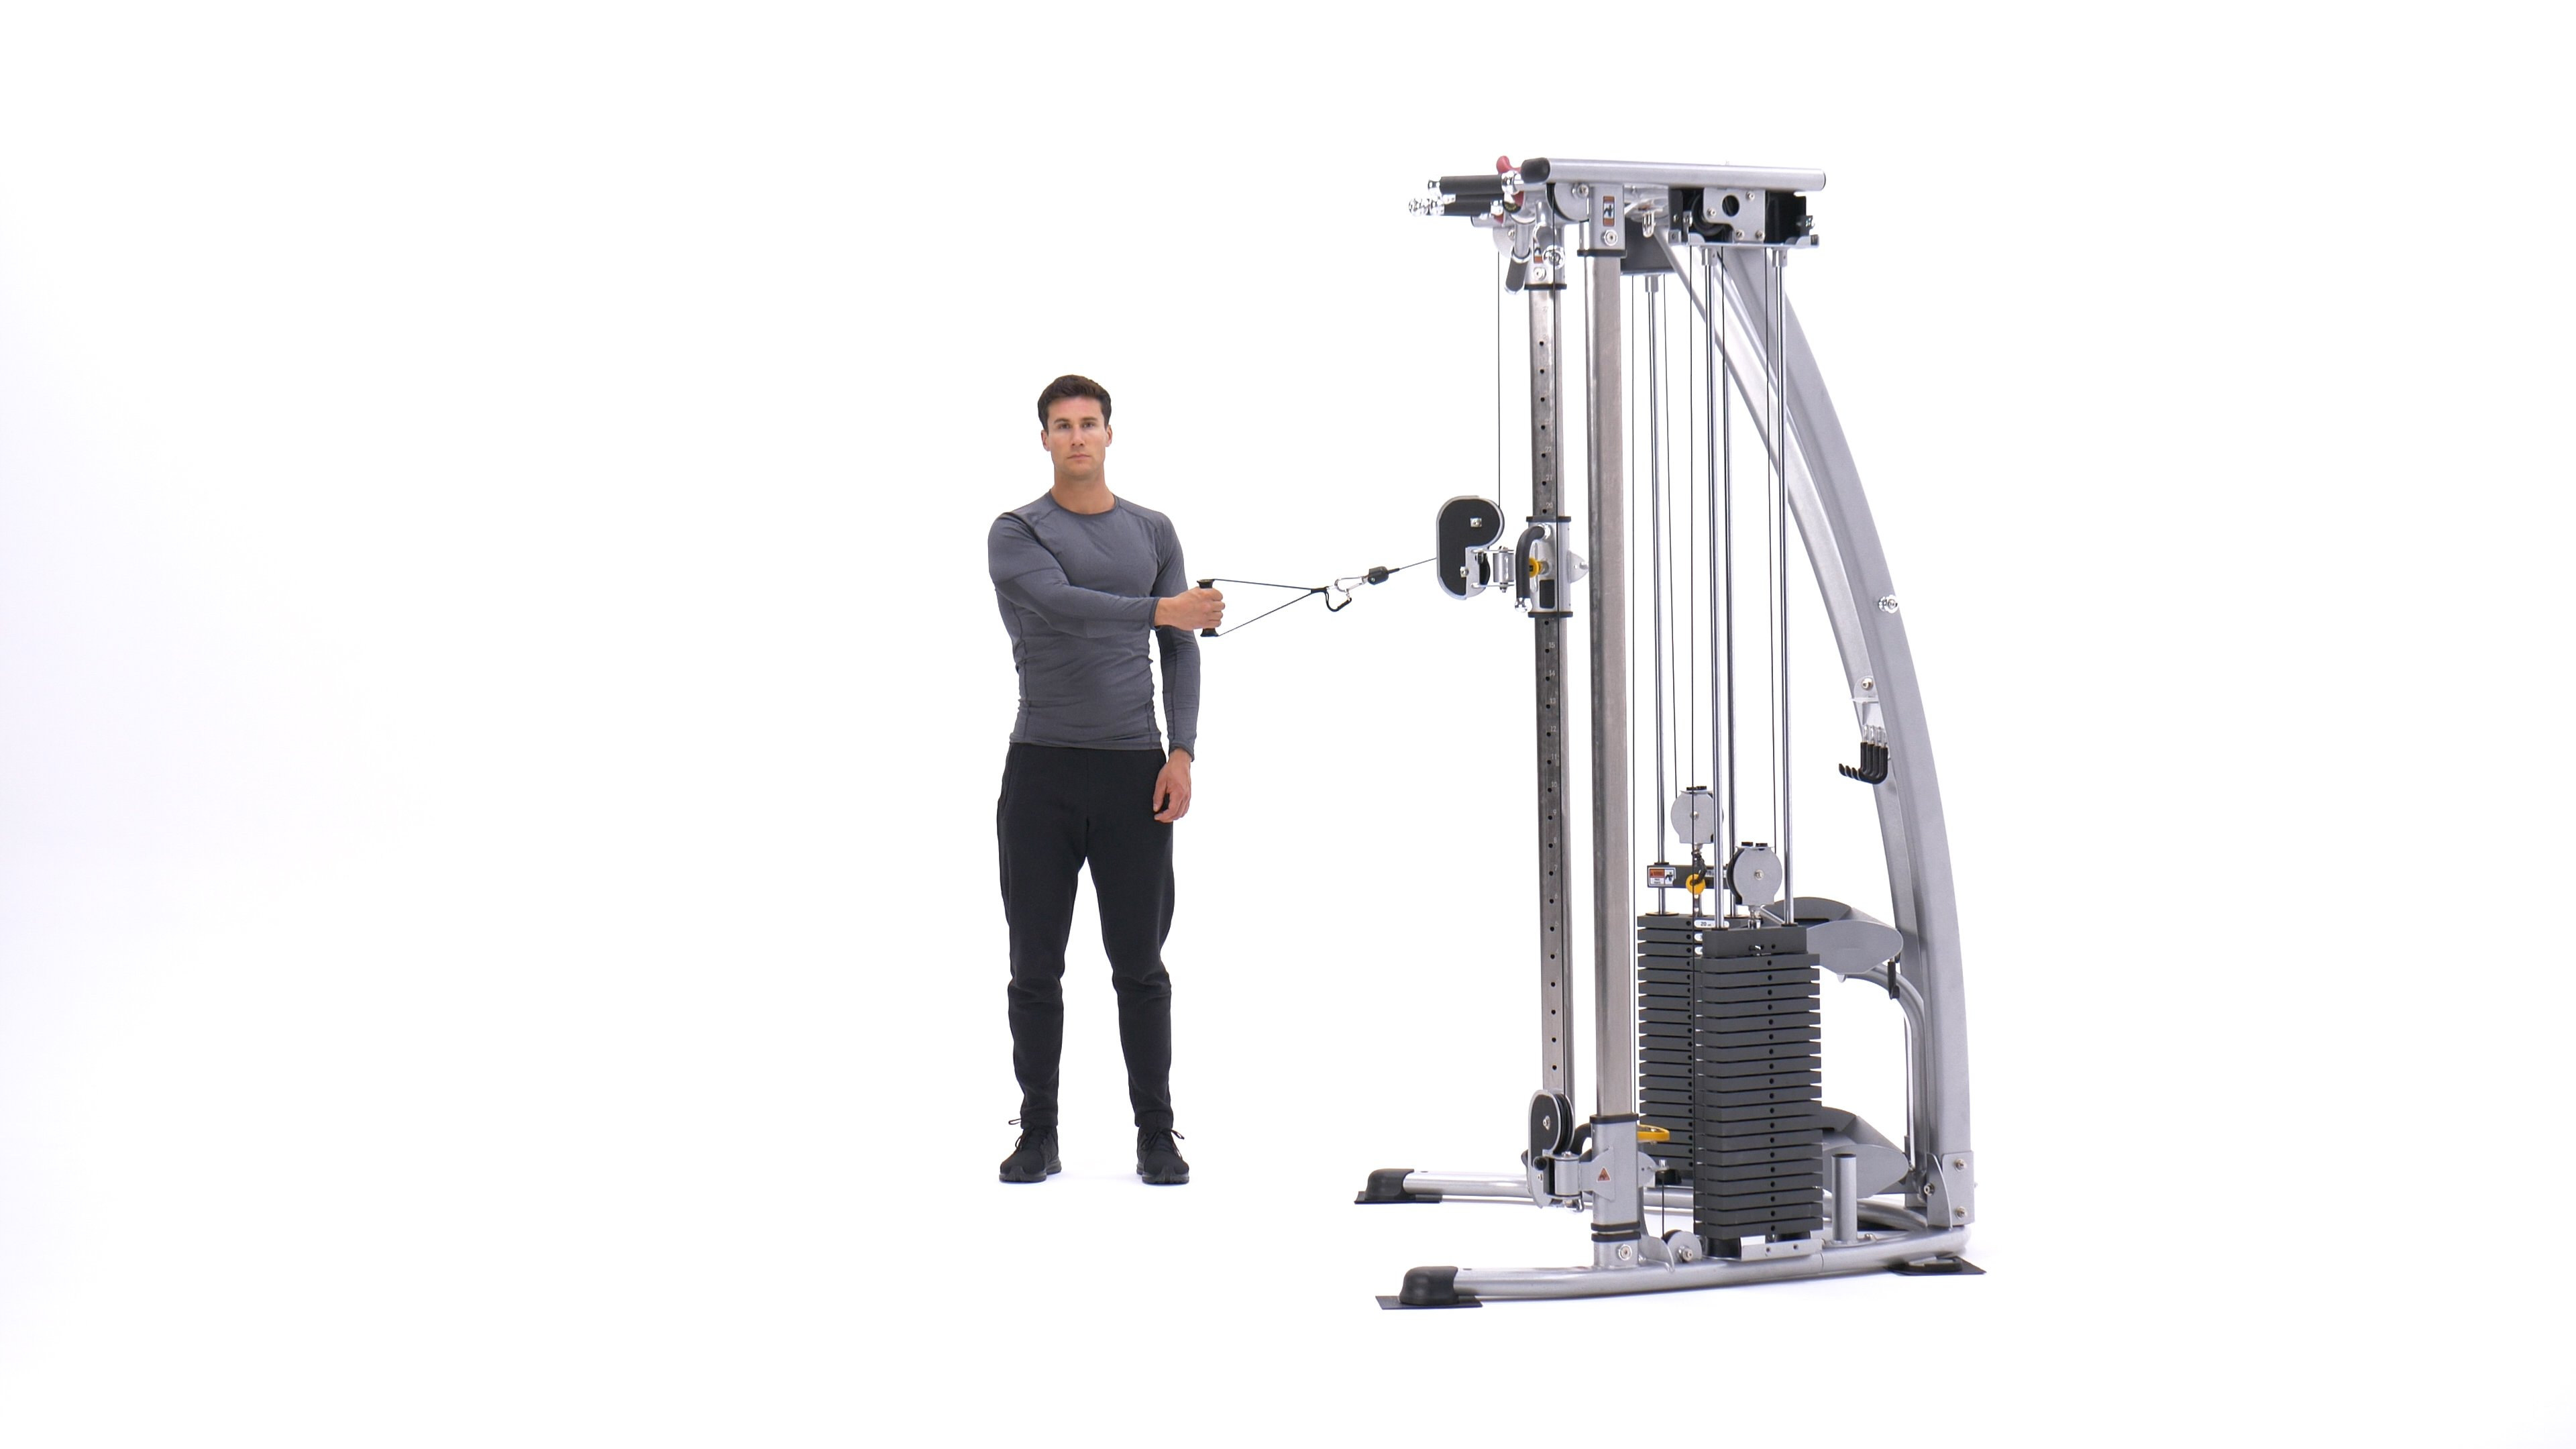 Single-arm bent-over cable rear delt fly image